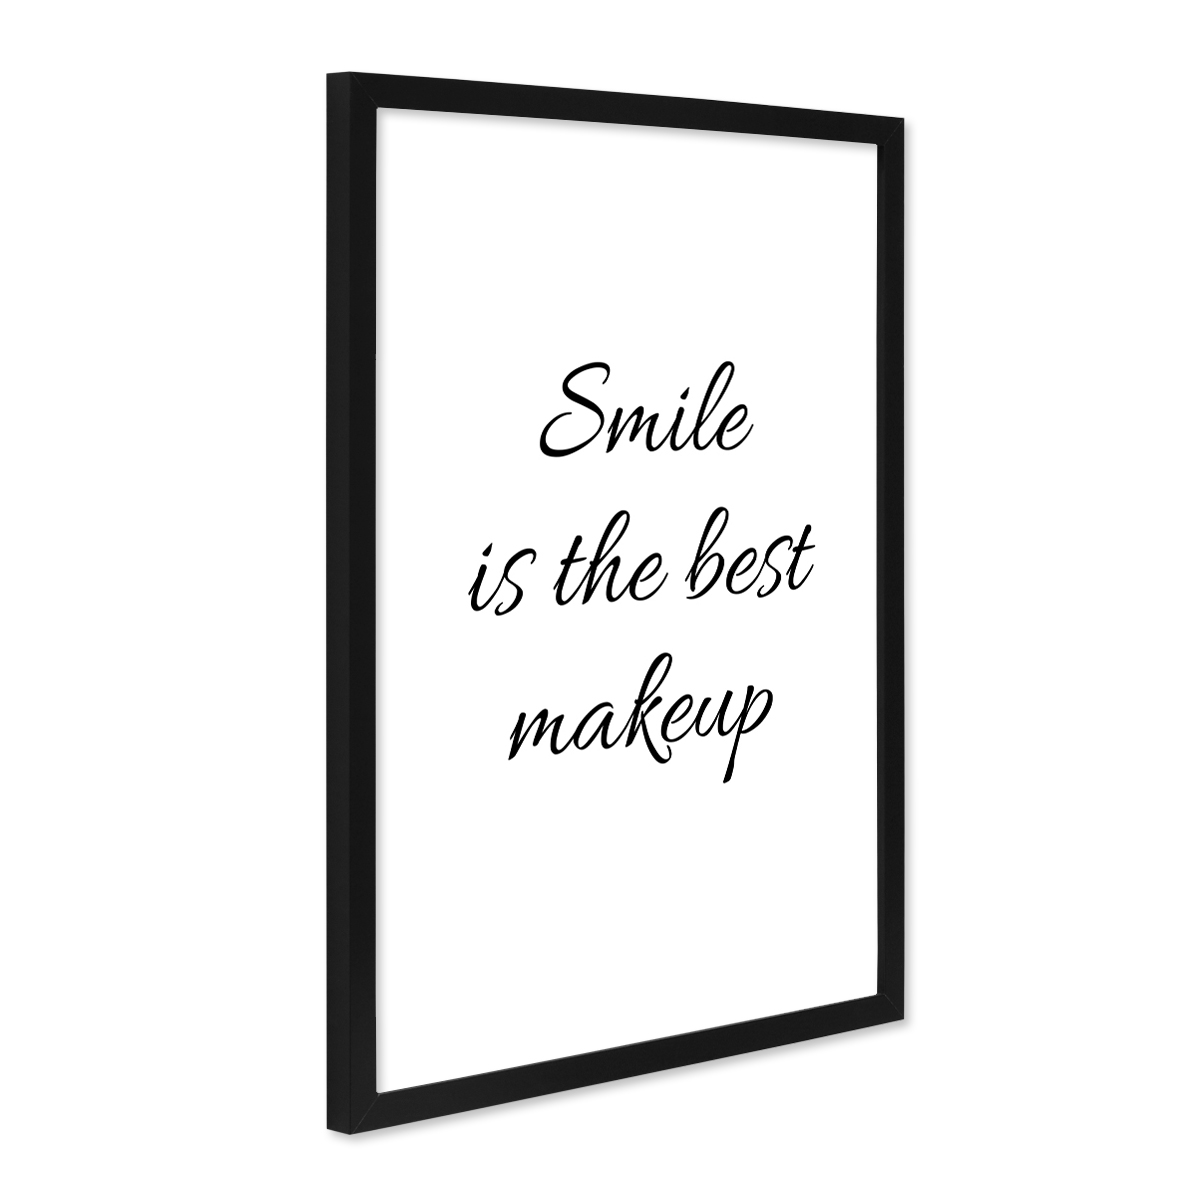 poster 39 smile 39 30x40 cm schwarz weiss motiv spruch typopgraphie modern poster spr che typographie. Black Bedroom Furniture Sets. Home Design Ideas